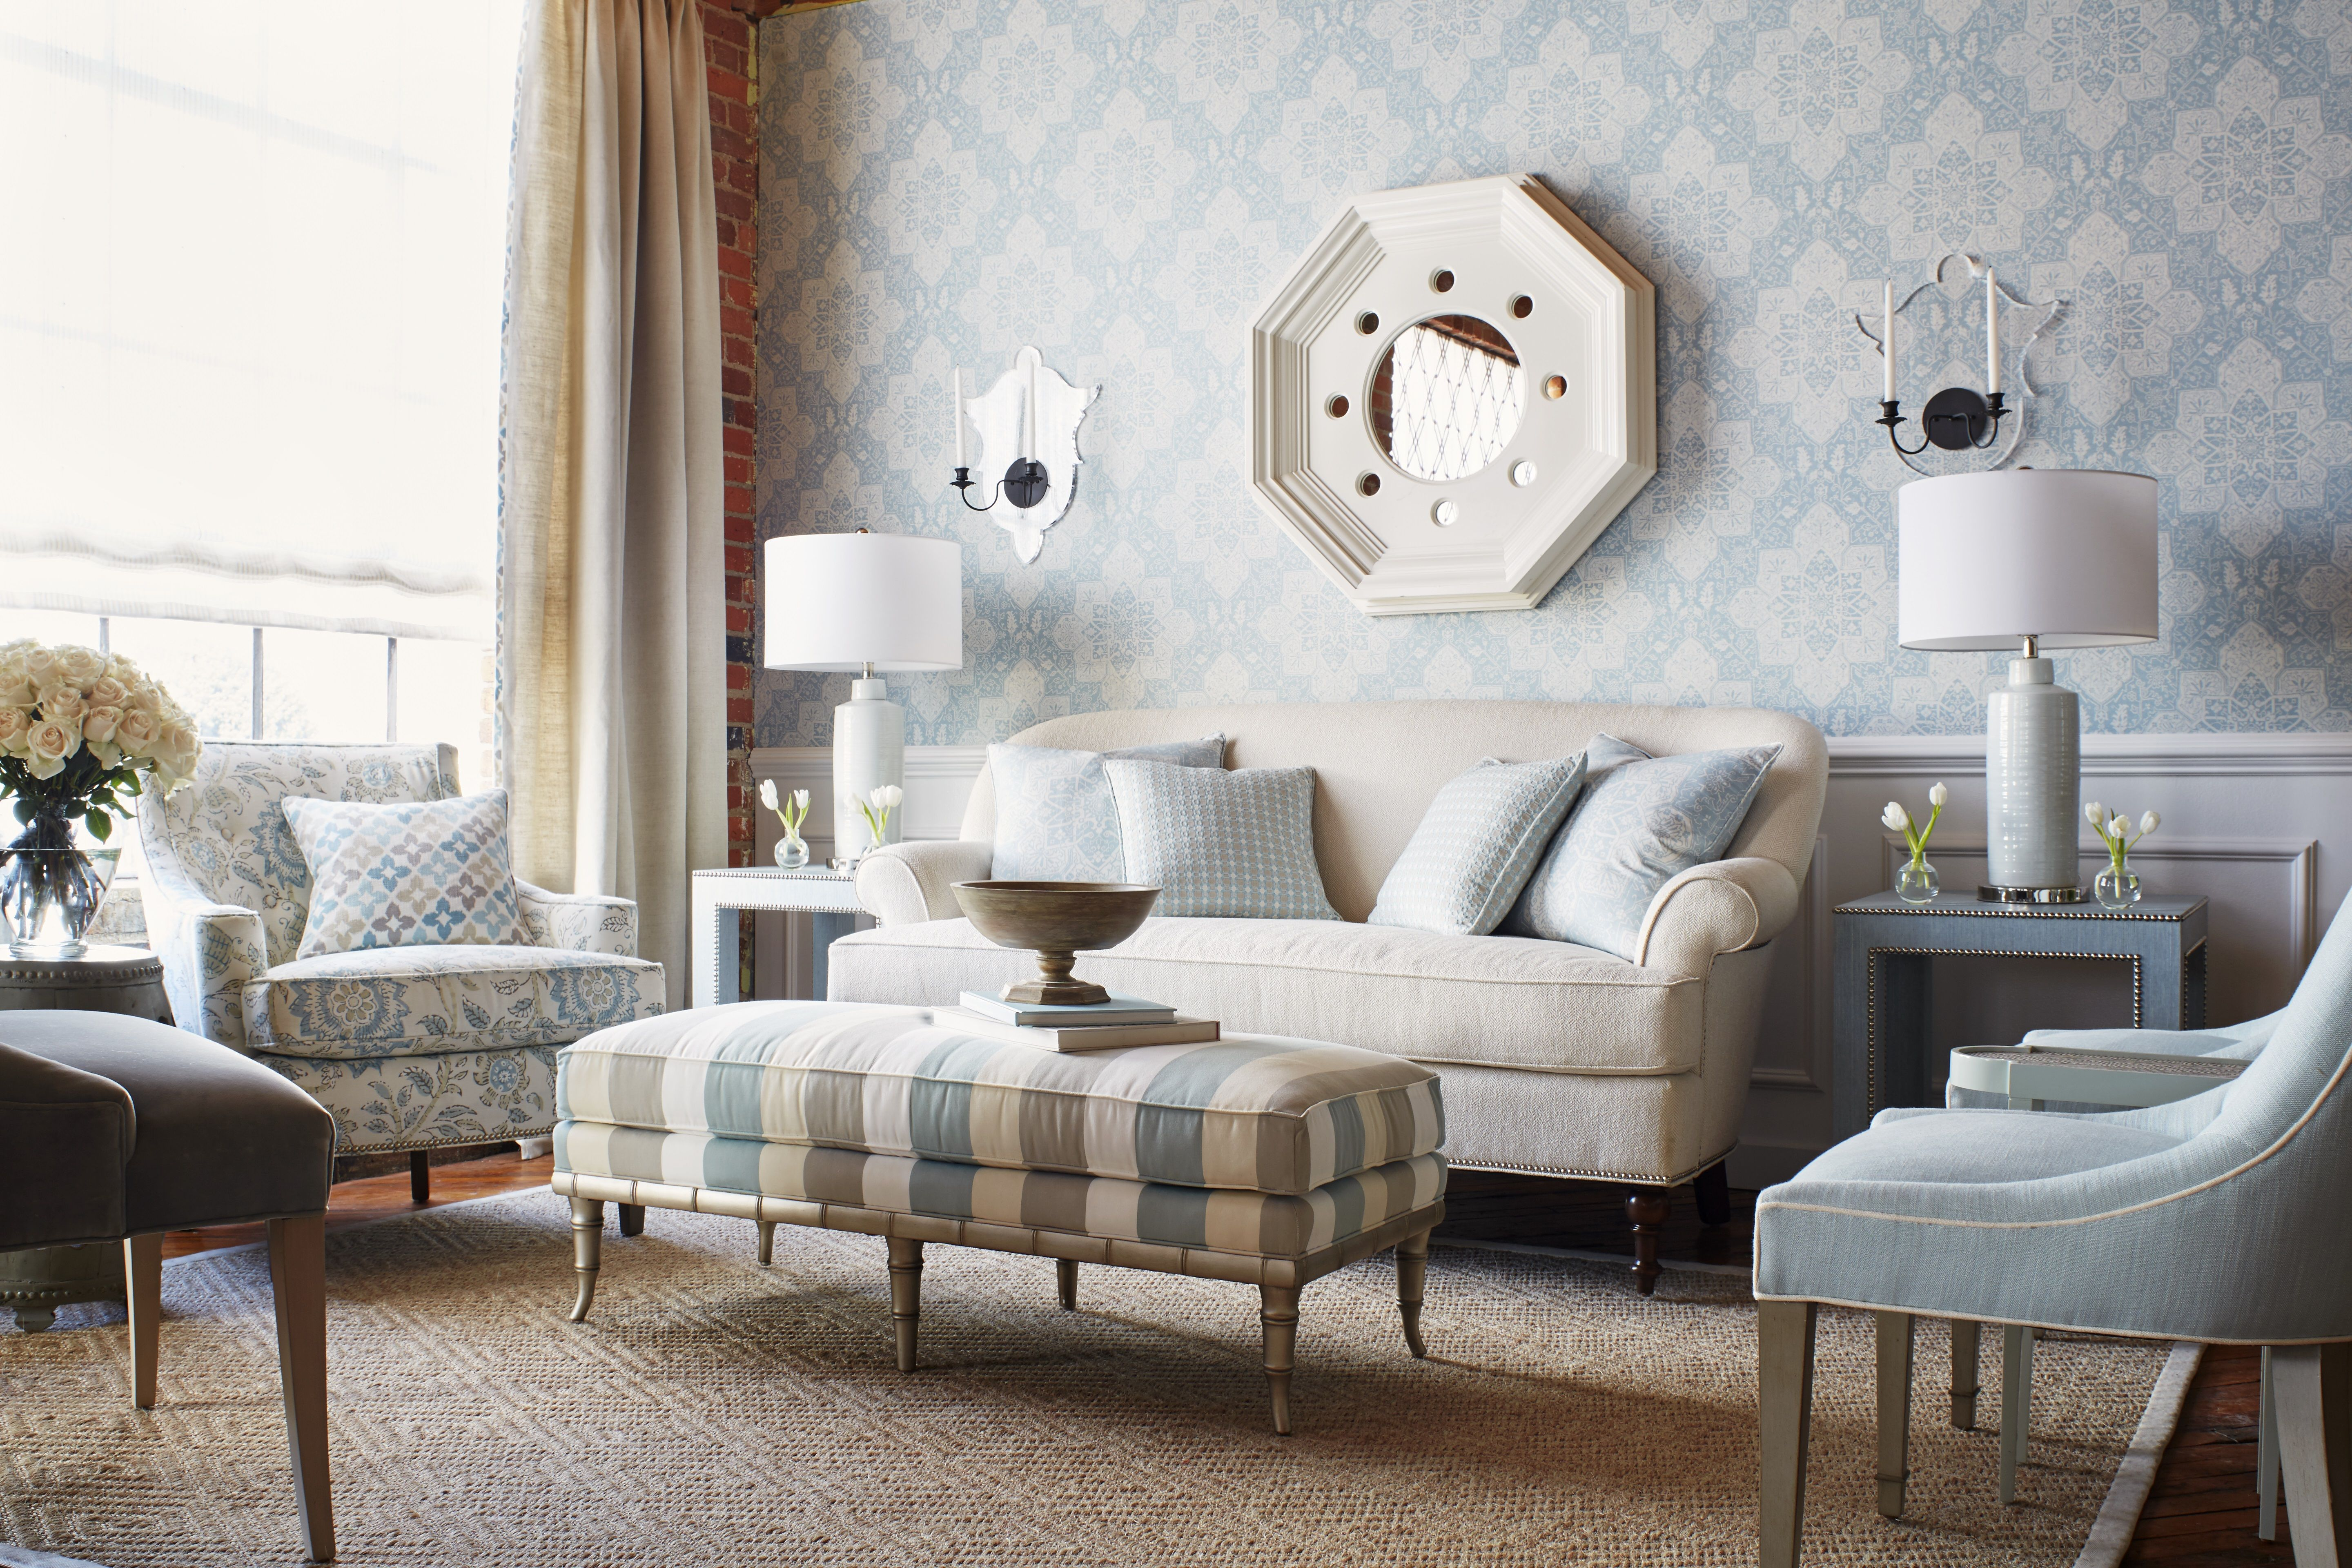 Thibaut Fine Furniture Showroom In High Point, Located At # 260 Historic  Market Square.